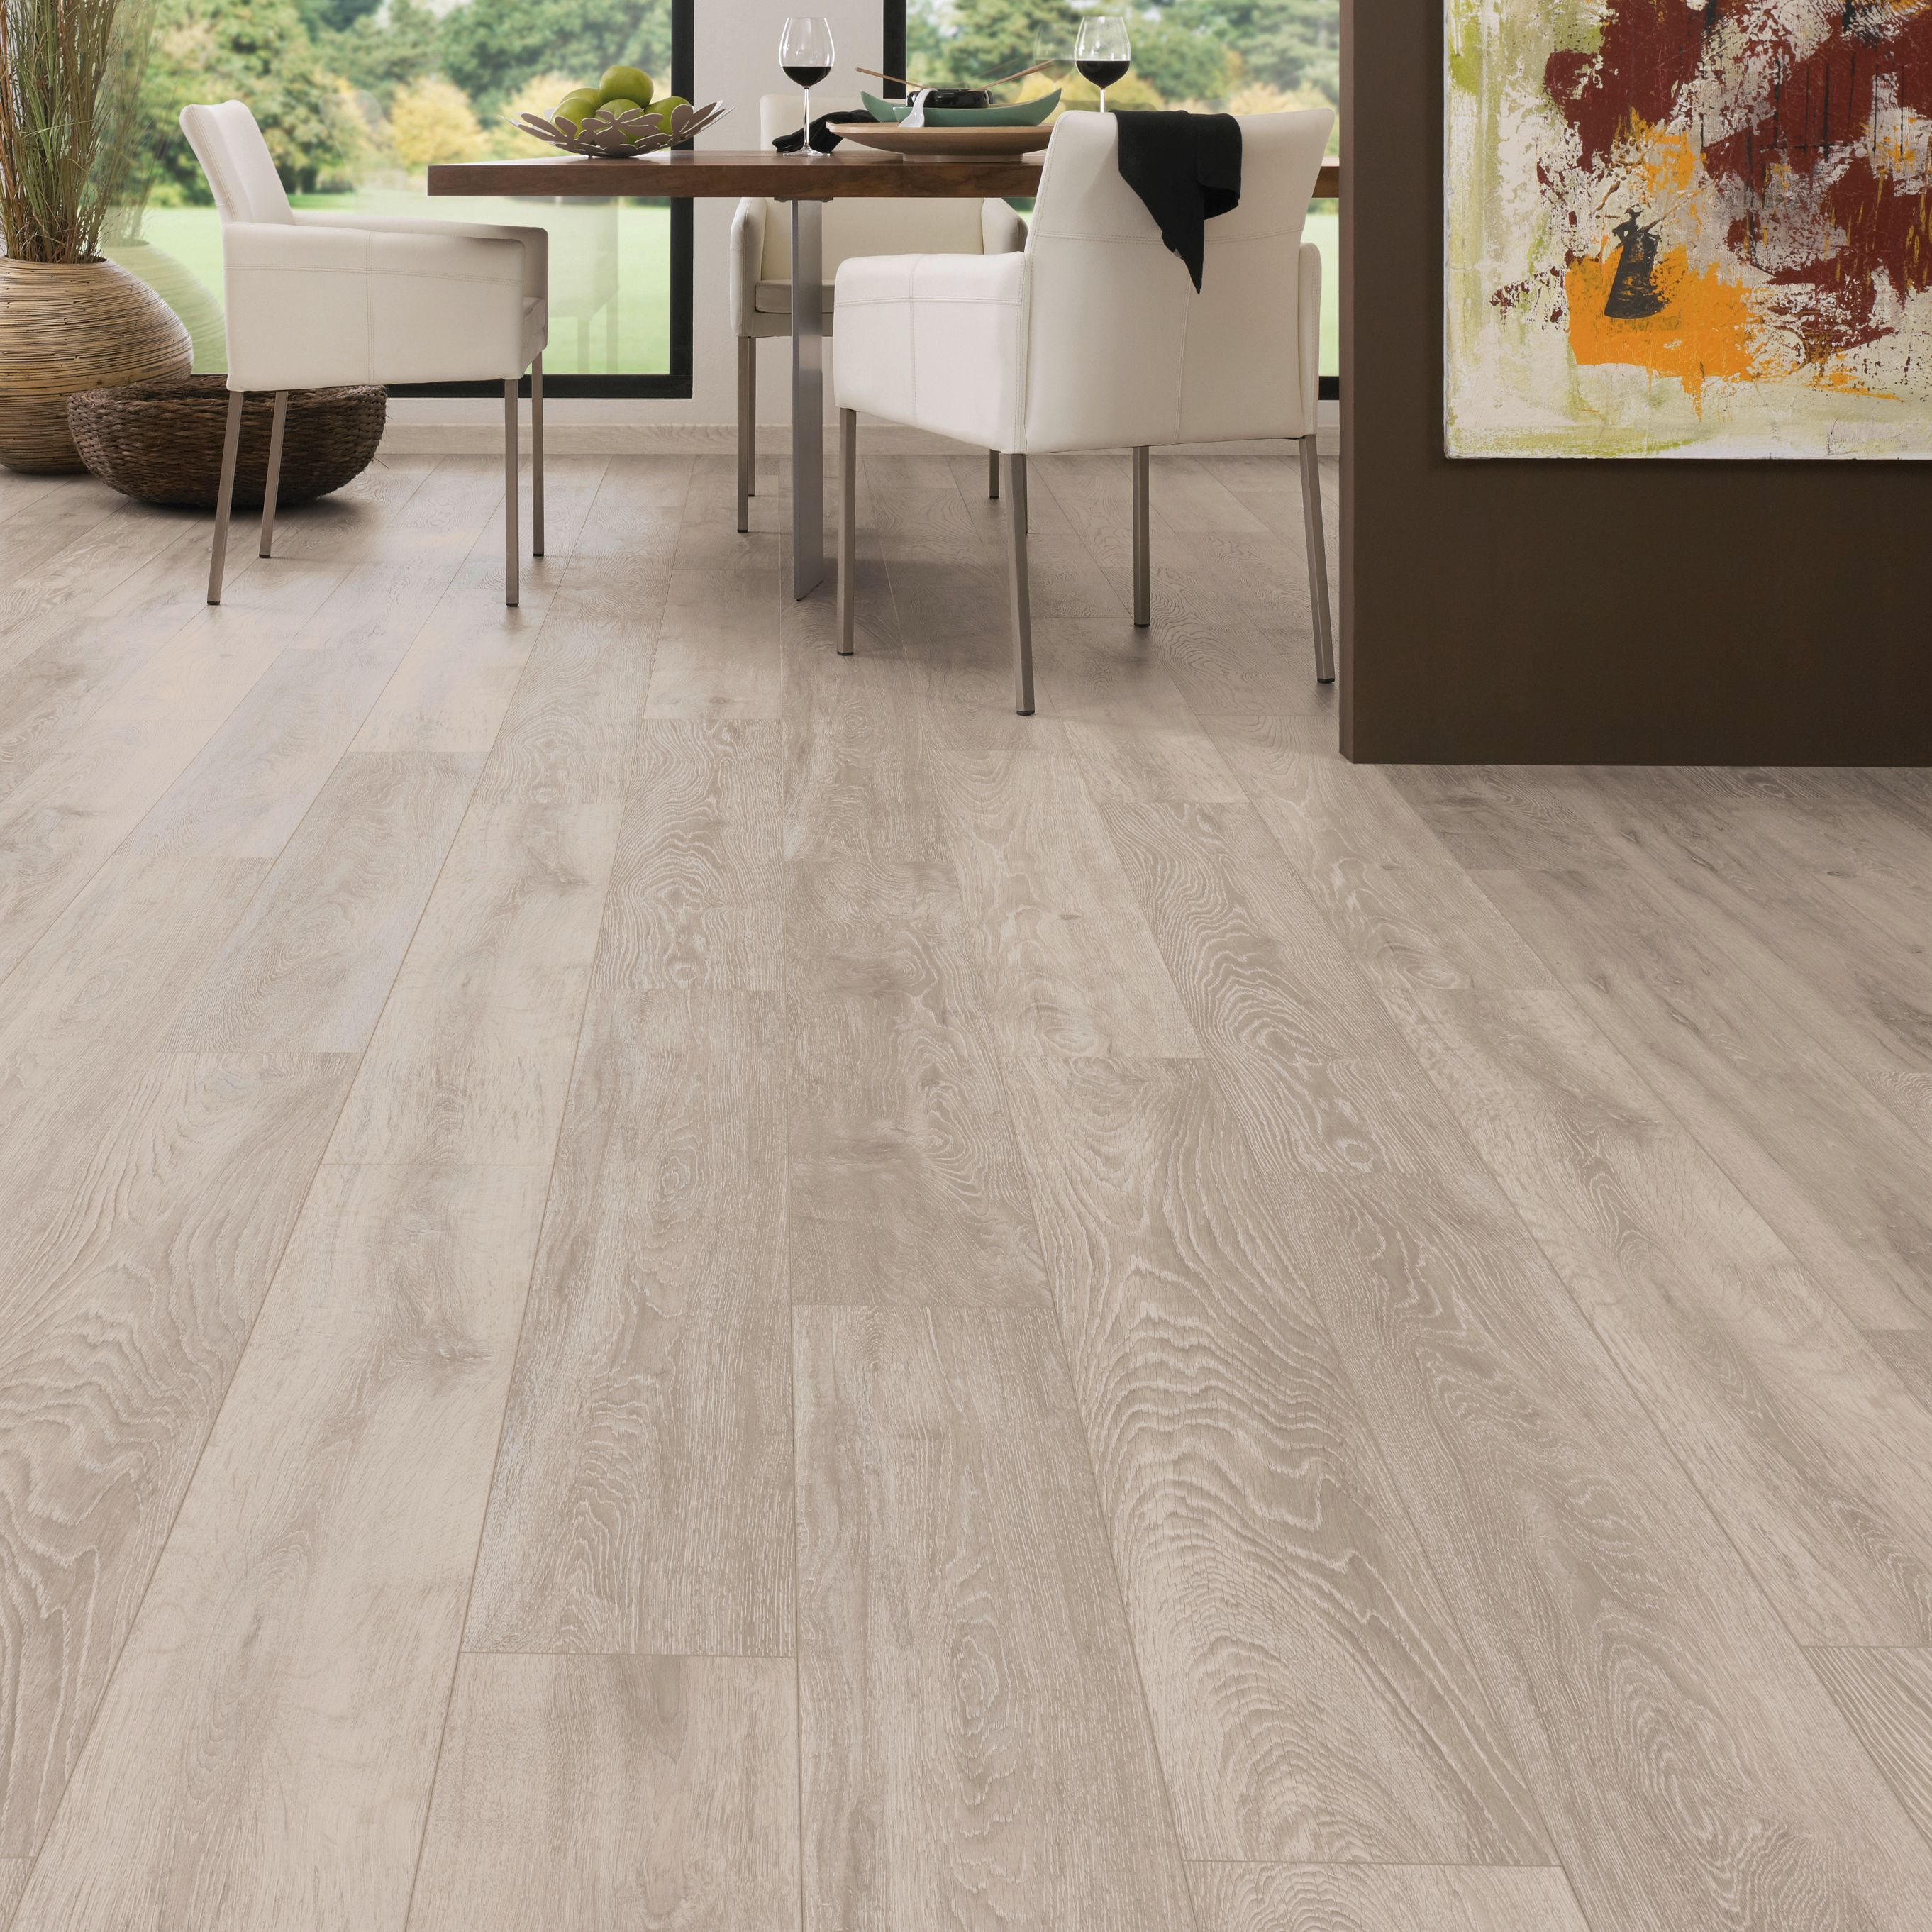 Amadeo Boulder Oak Effect Laminate Flooring 2 22 M² Pack